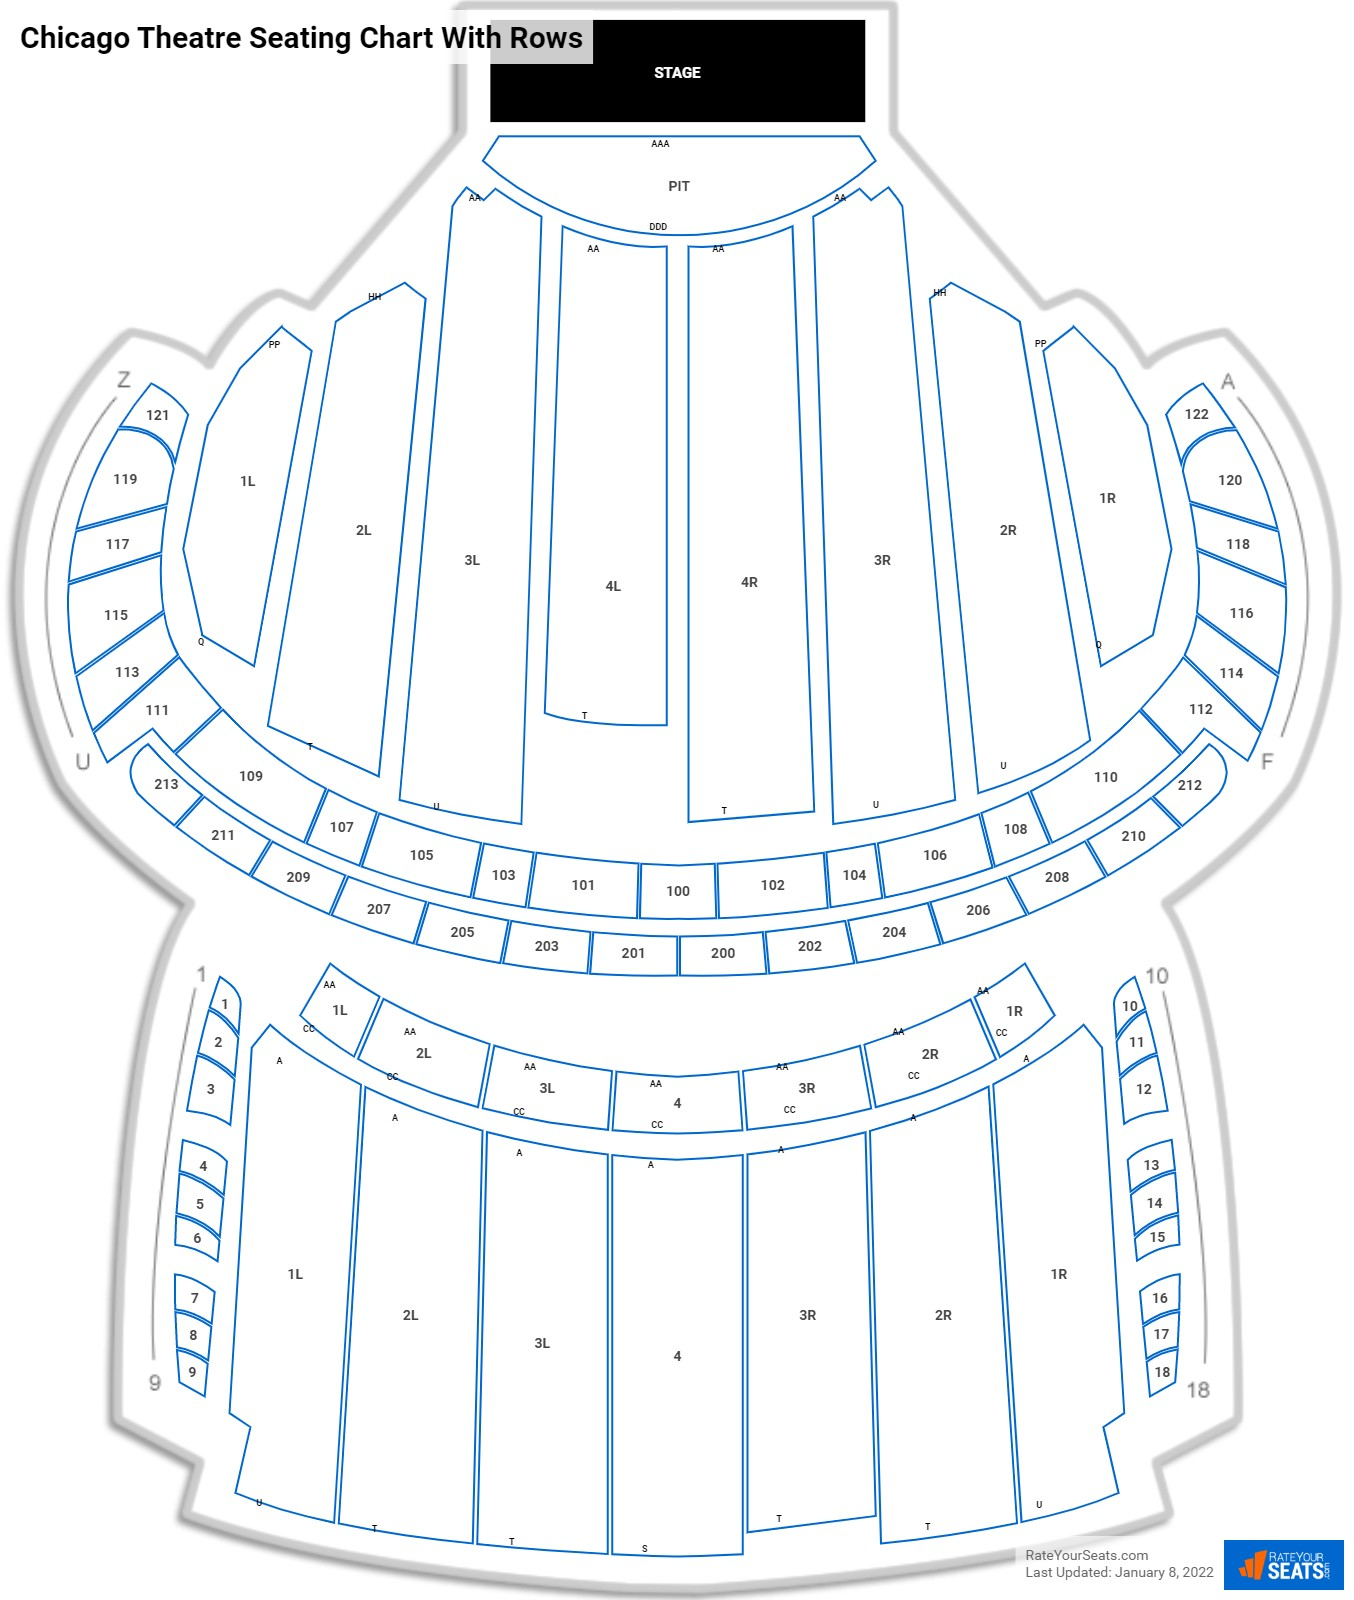 Chicago Theatre seating chart with rows